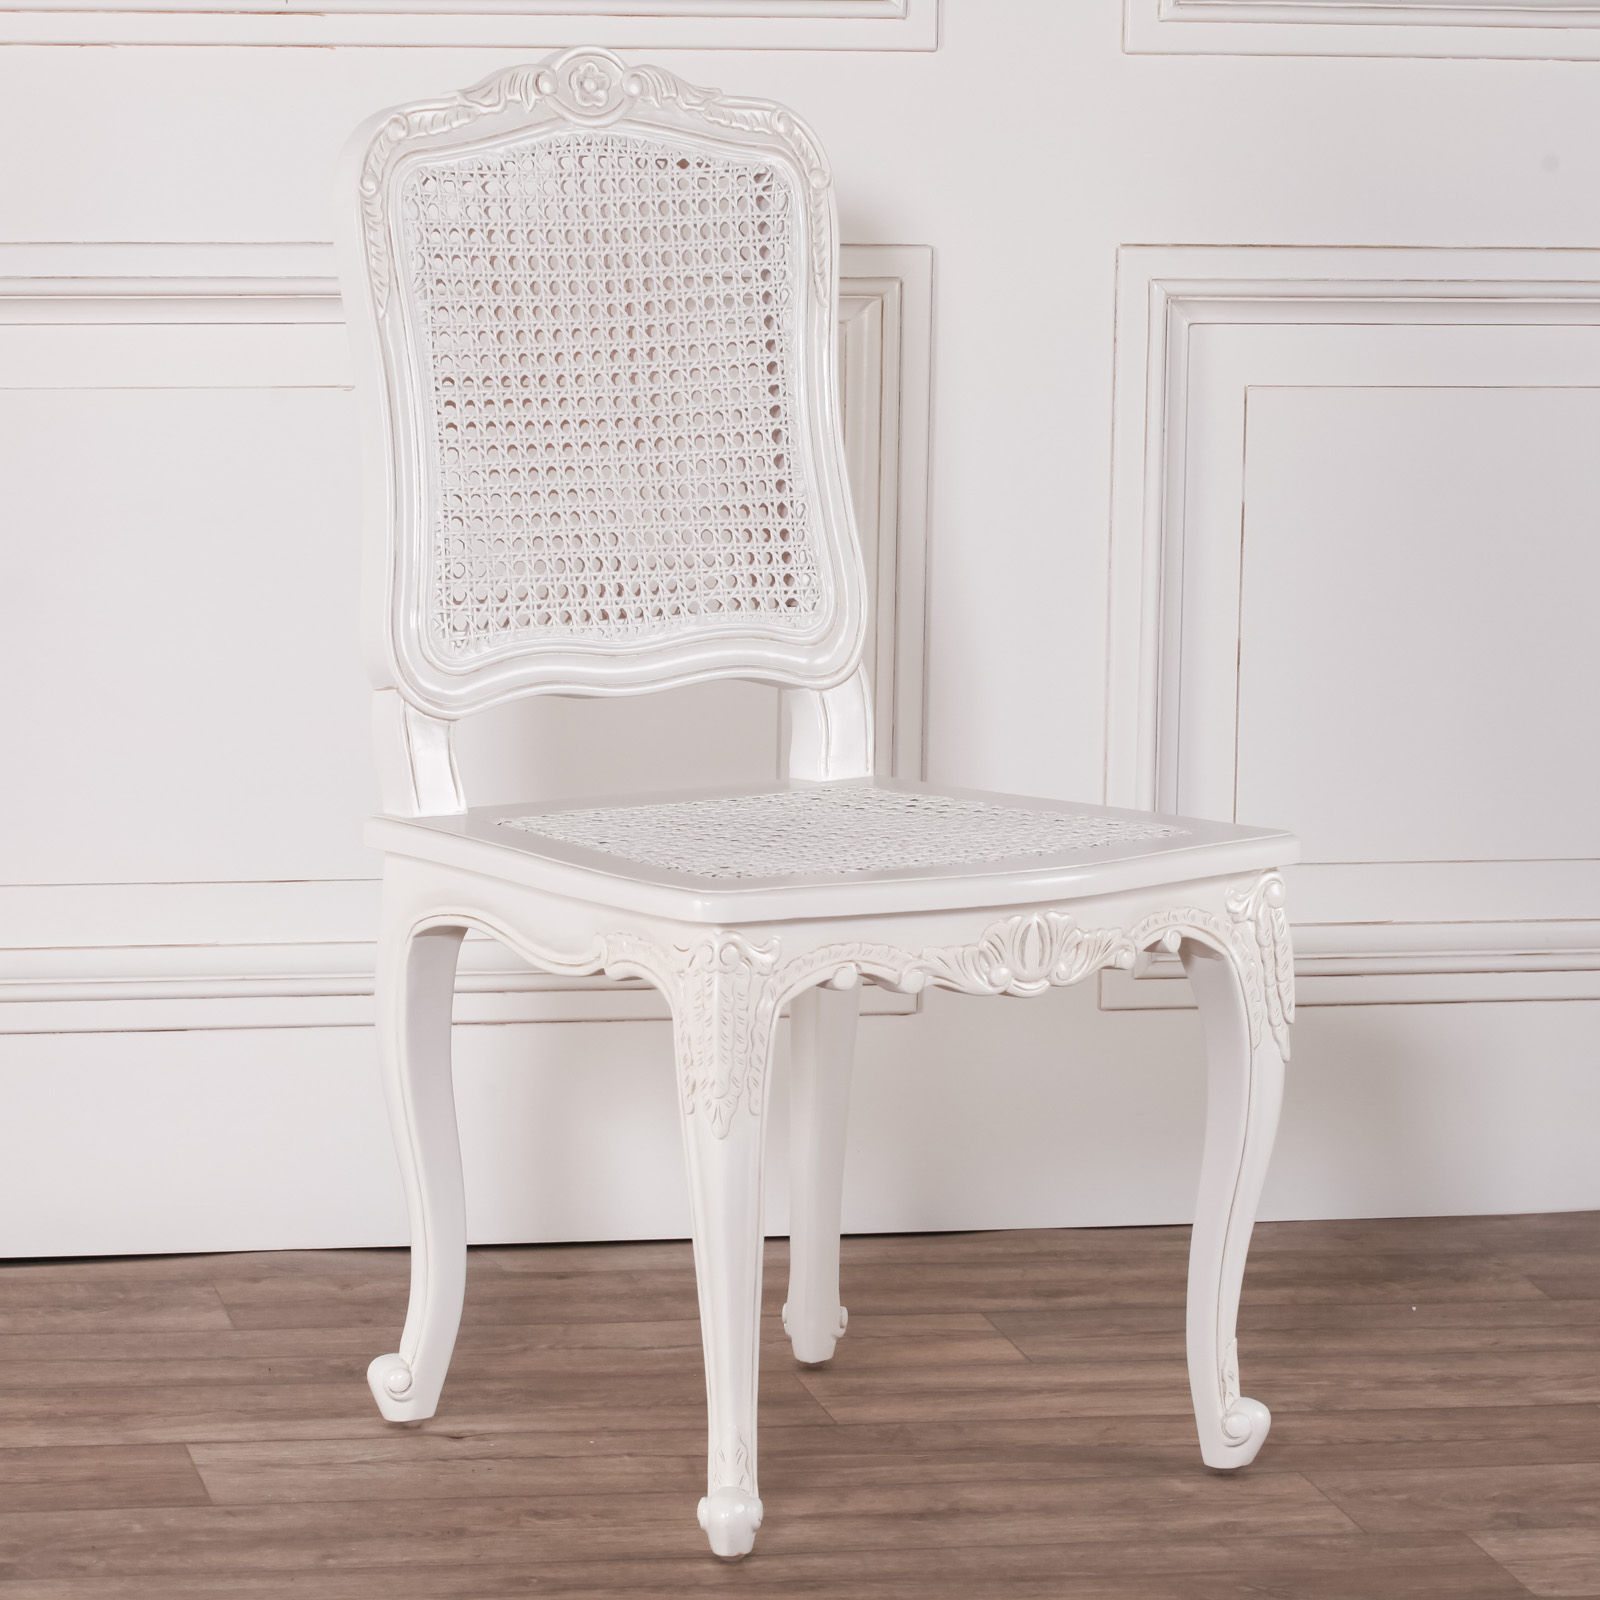 White Rattan Dining / Bedroom Chair